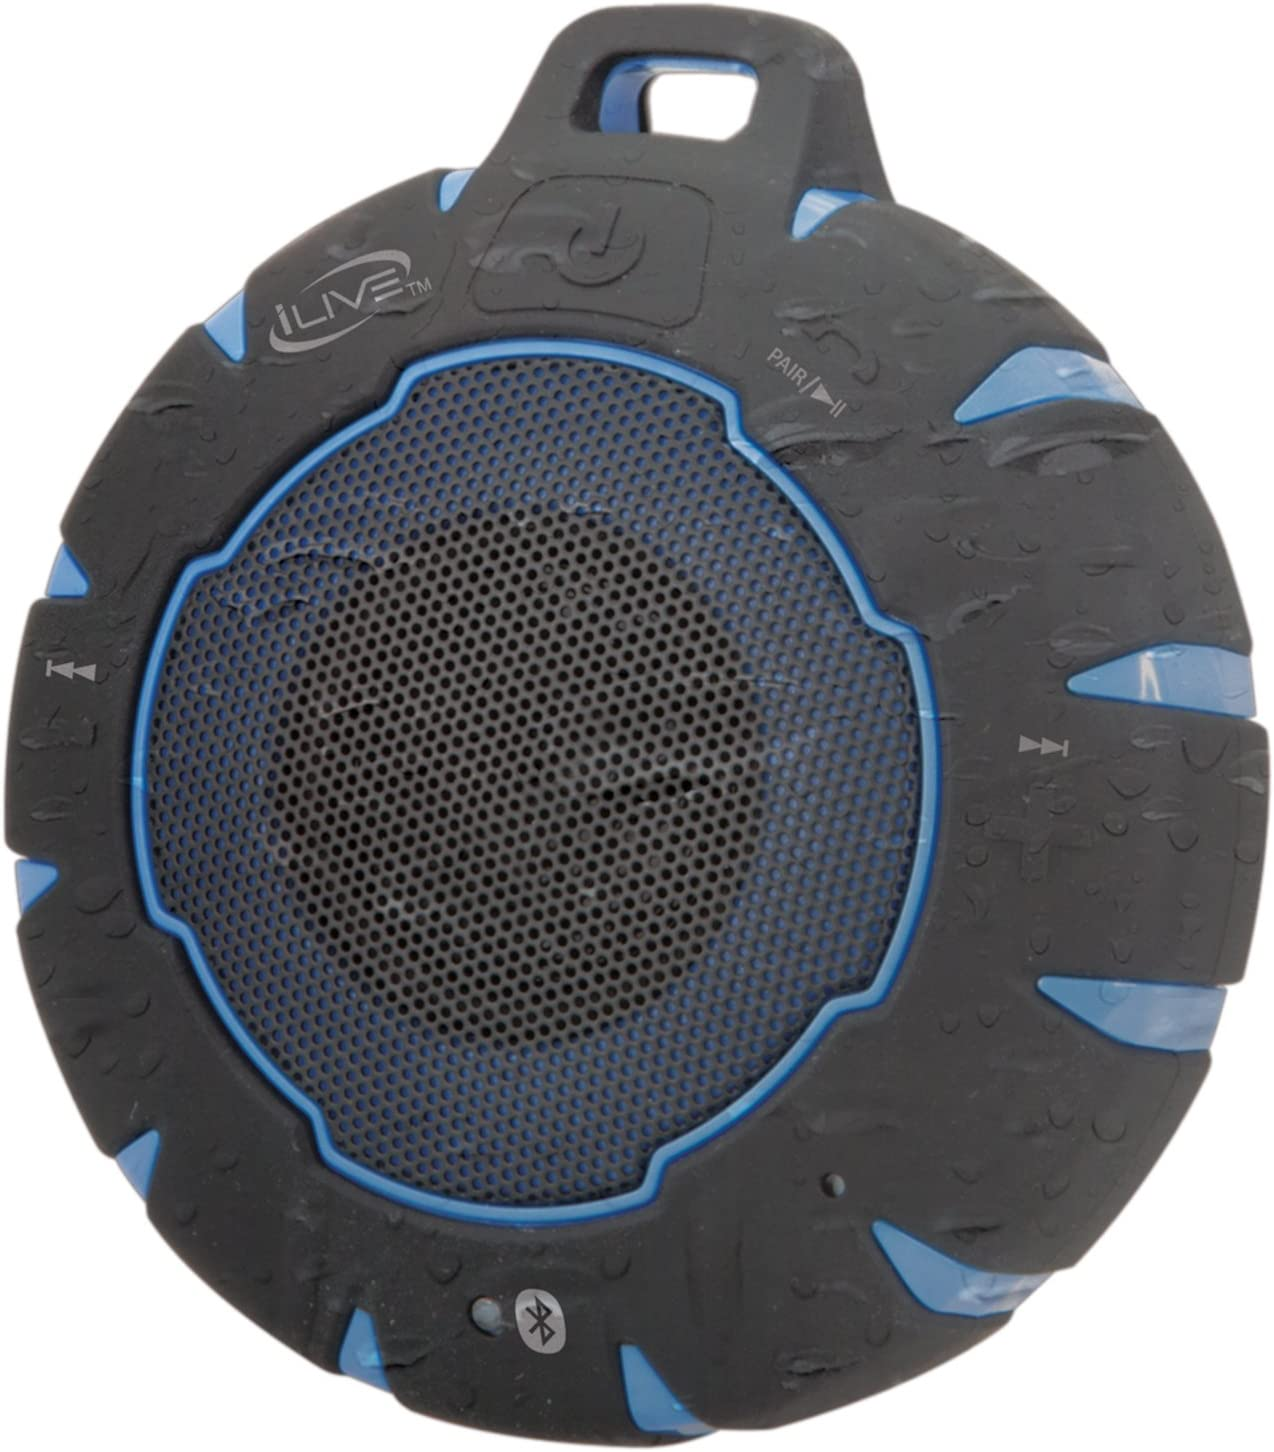 iLive Waterproof Wireless Speaker, Includes Detachable Carabiner Clip and  Micro-USB to USB Cable, Black/Blue (iSBW10BU)